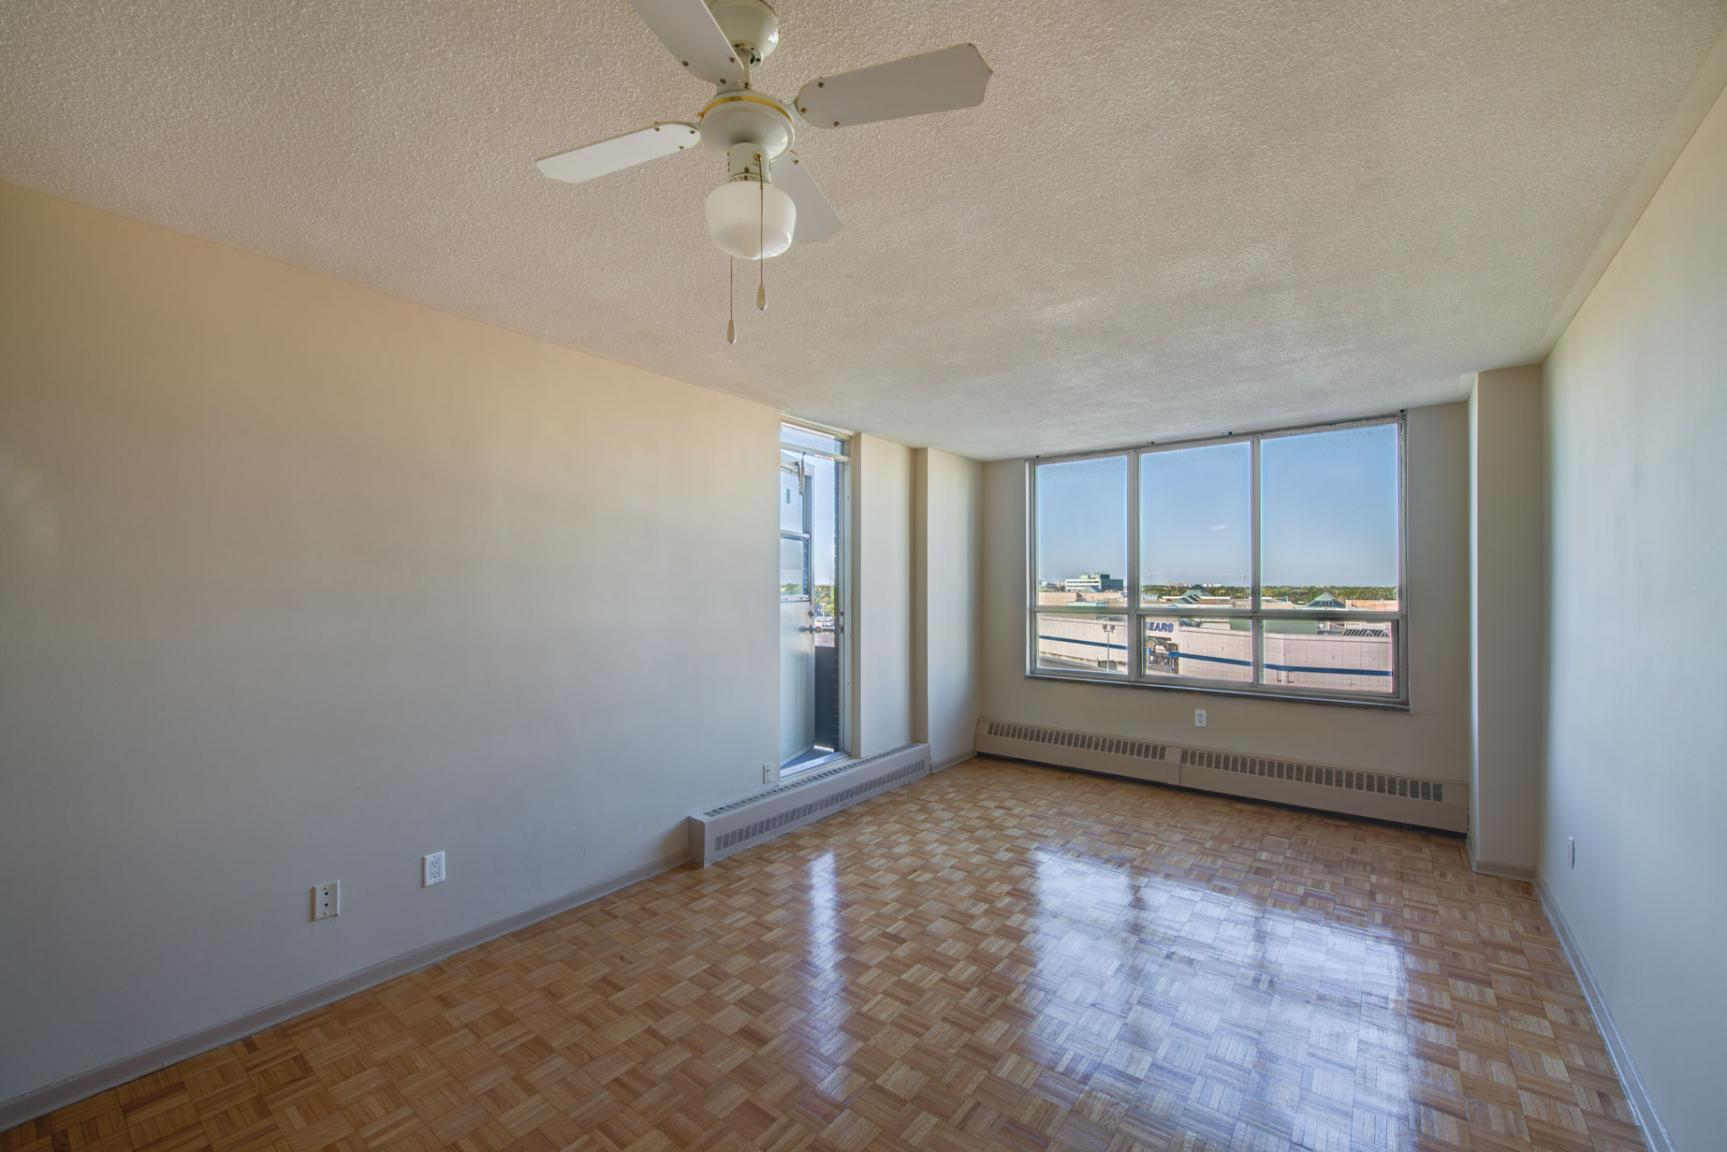 1 bedroom Apartments for rent in North-York at Hunters Lodge - Photo 31 - RentersPages – L400651